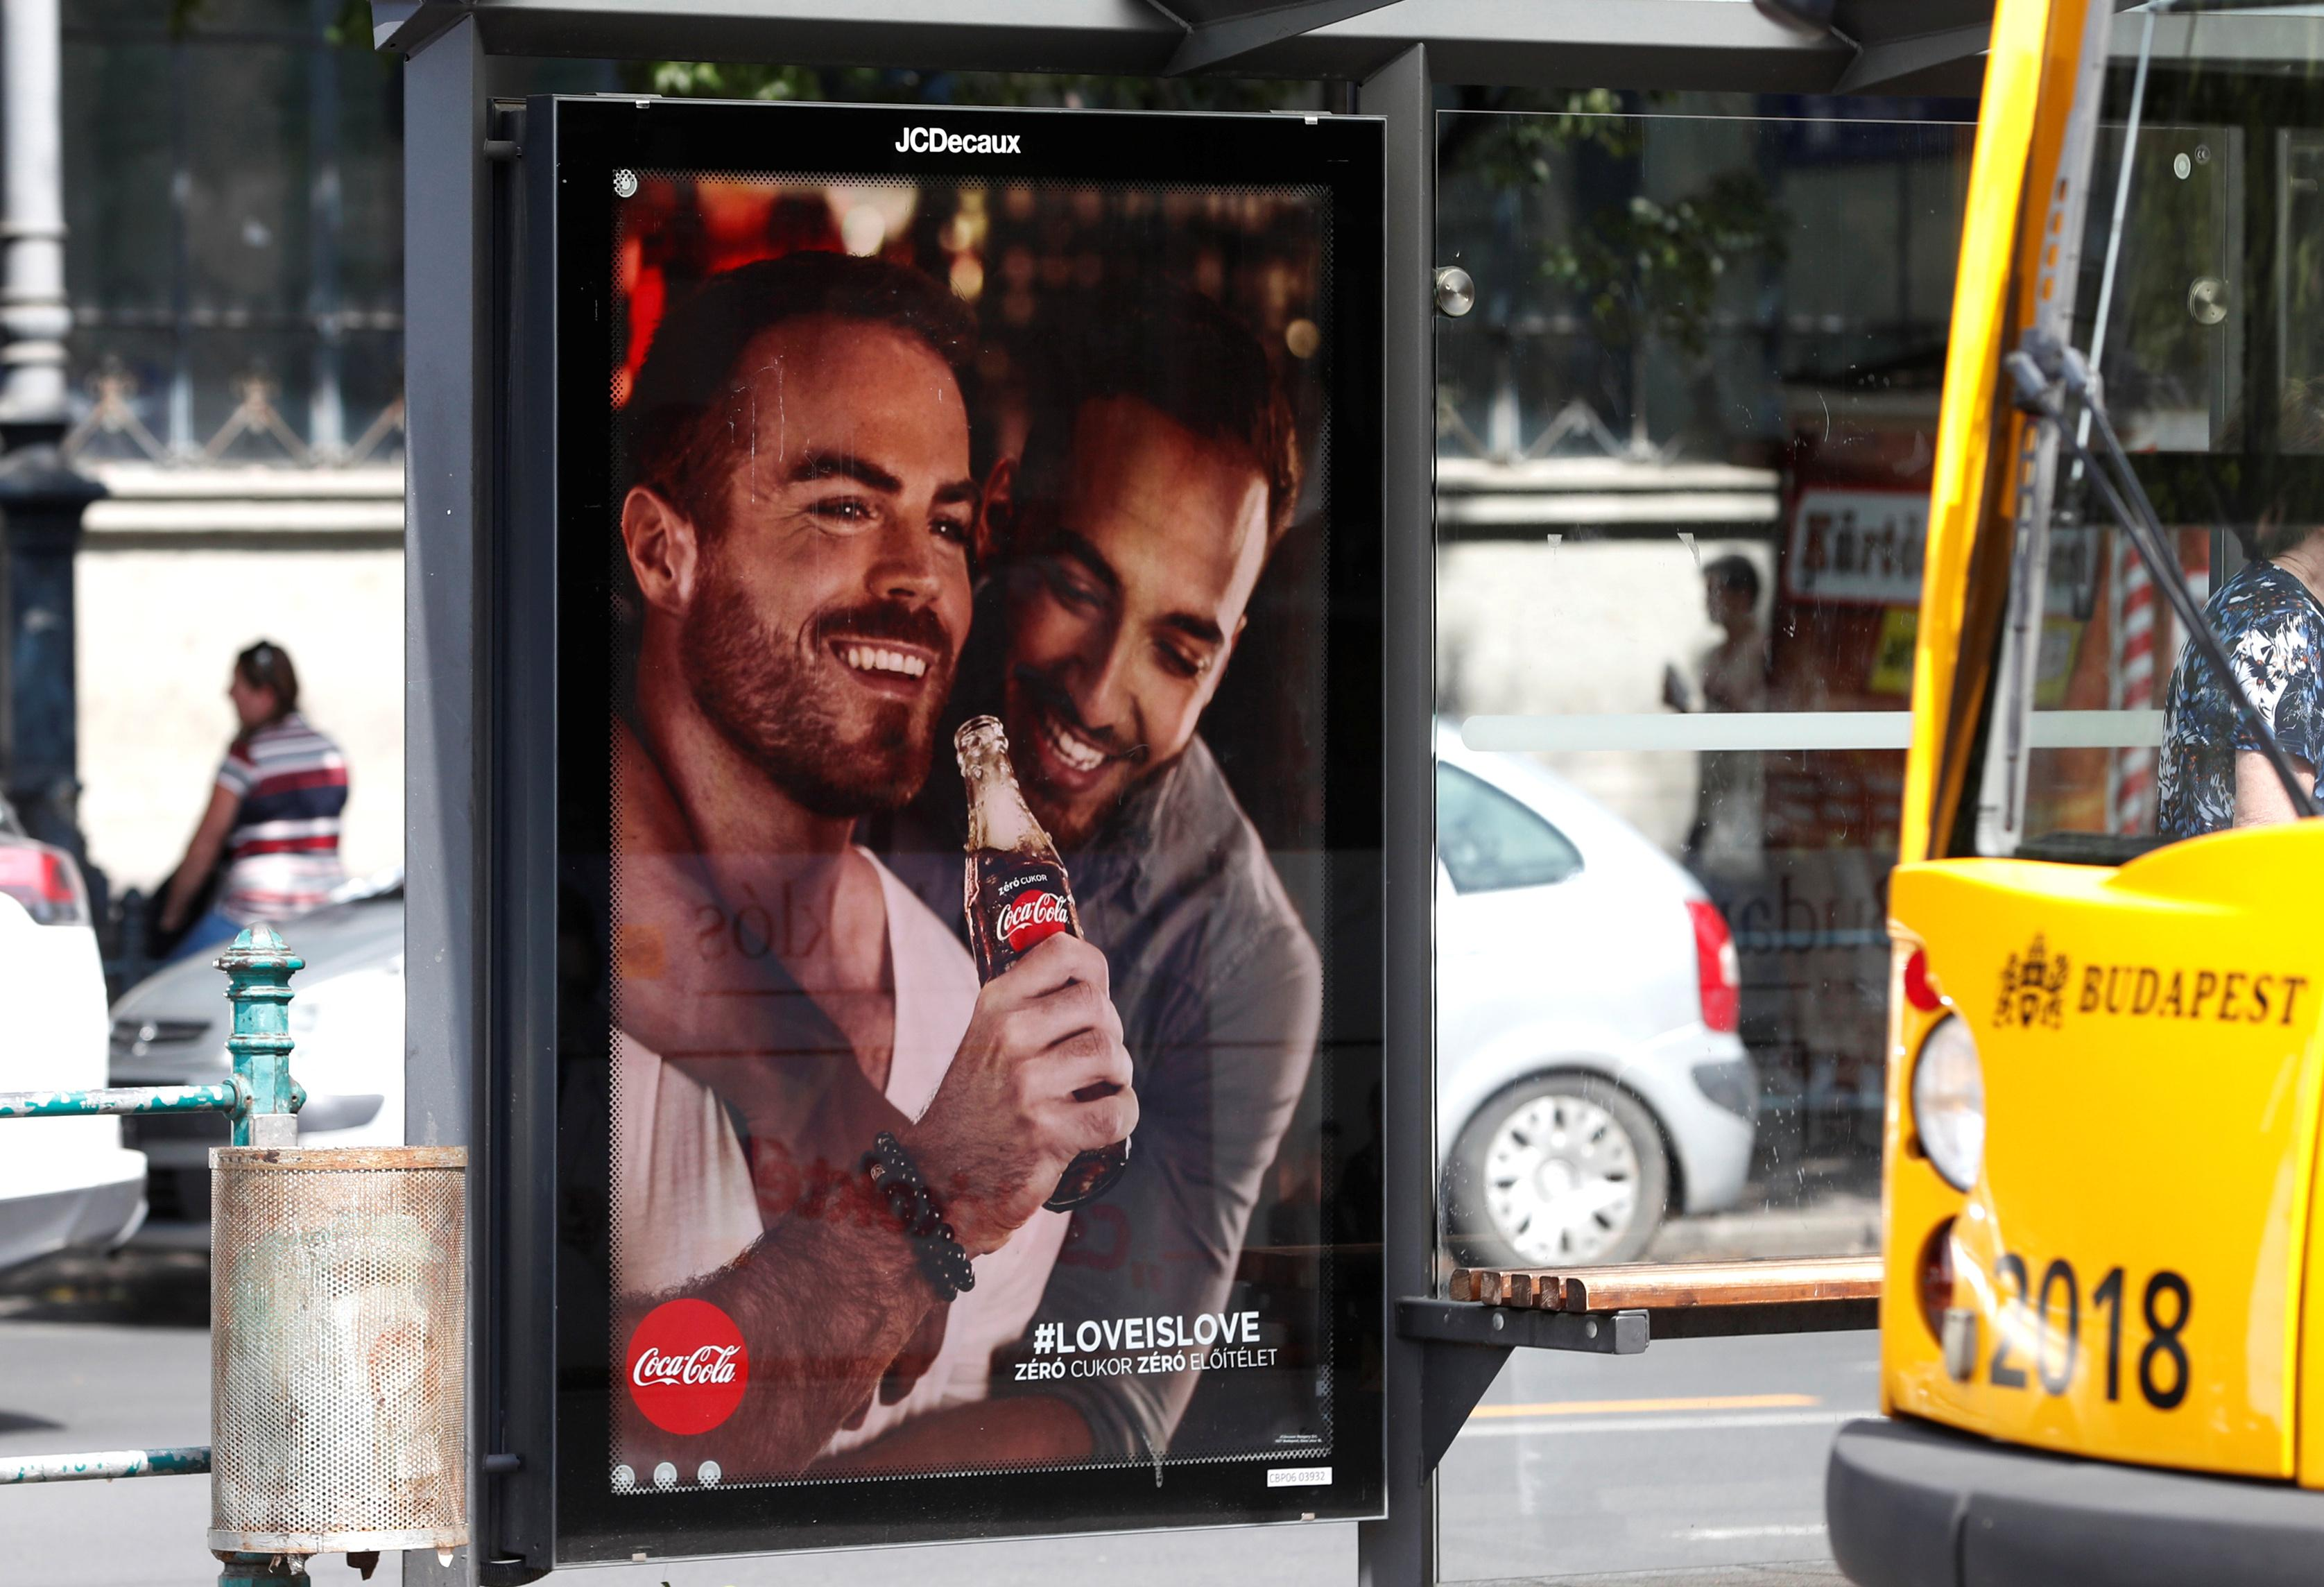 Coca-Cola ads promoting gay tolerance stir furore in Hungary